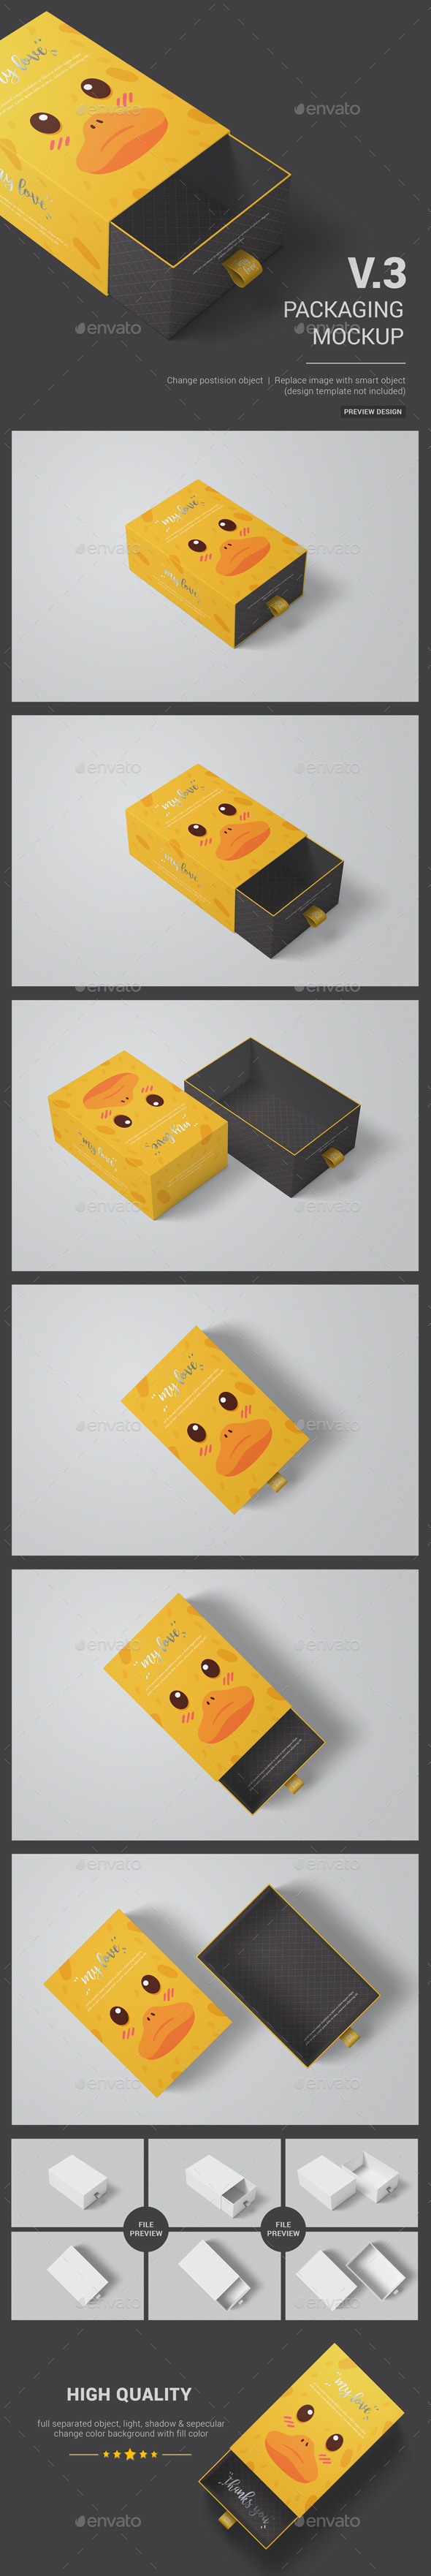 Sliding Box Packaging / Package Mockup 03